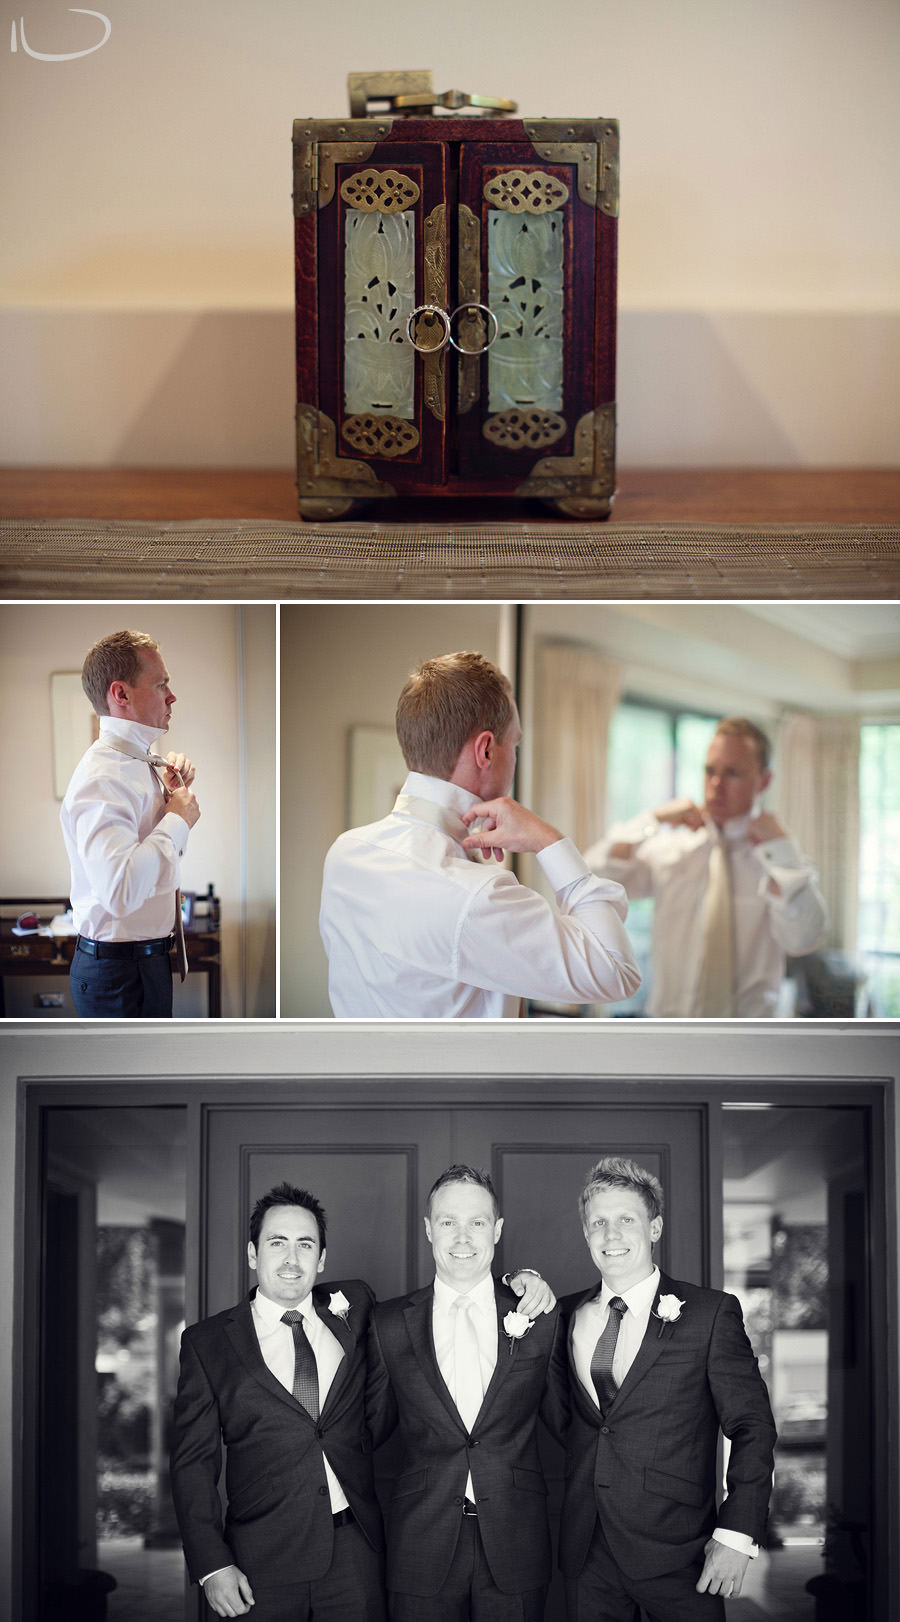 Canberra Wedding Photographer: Groom getting ready